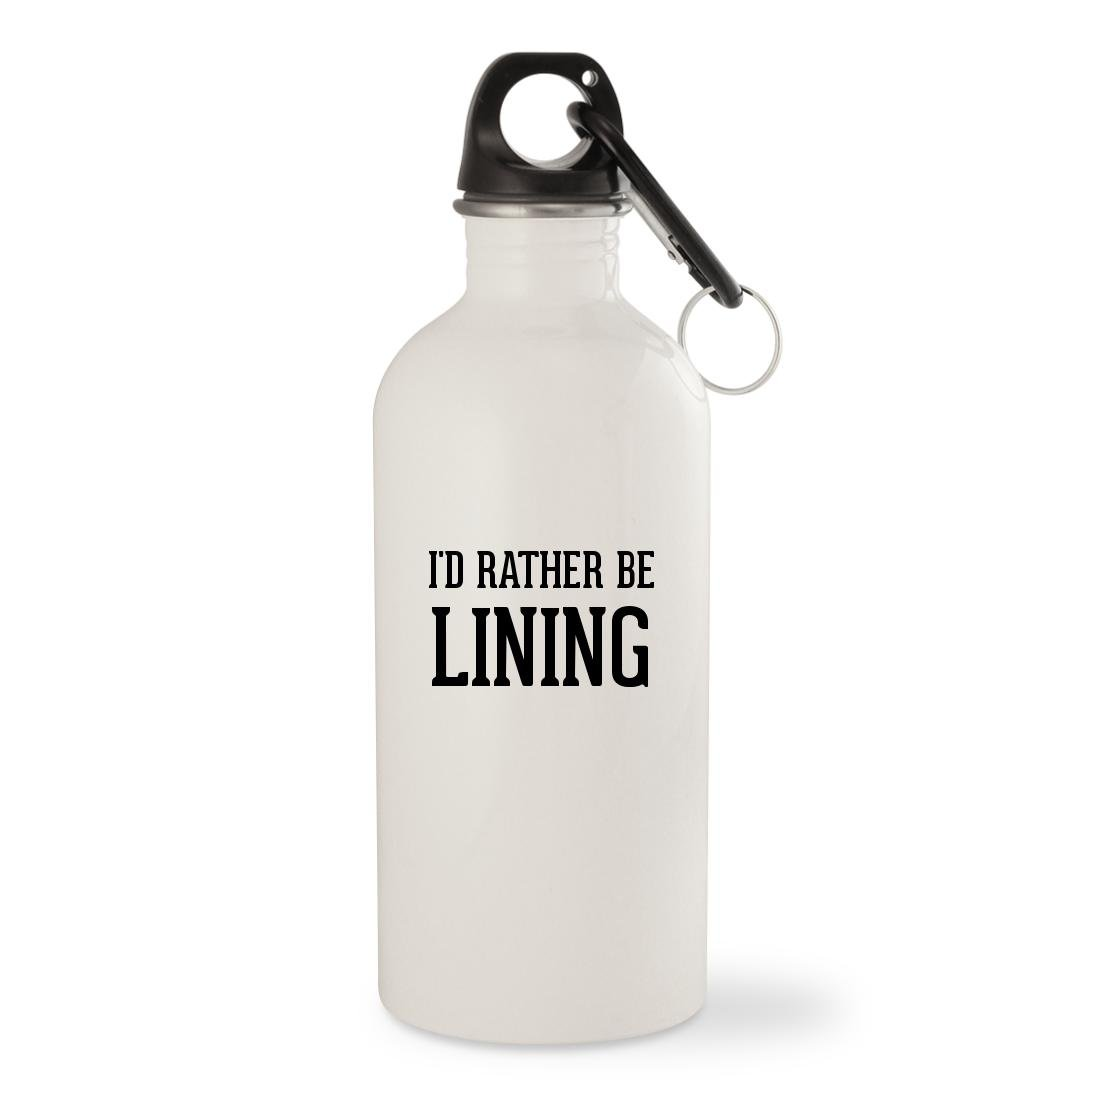 I'd Rather Be LINING - White 20oz Stainless Steel Water Bottle with Carabiner